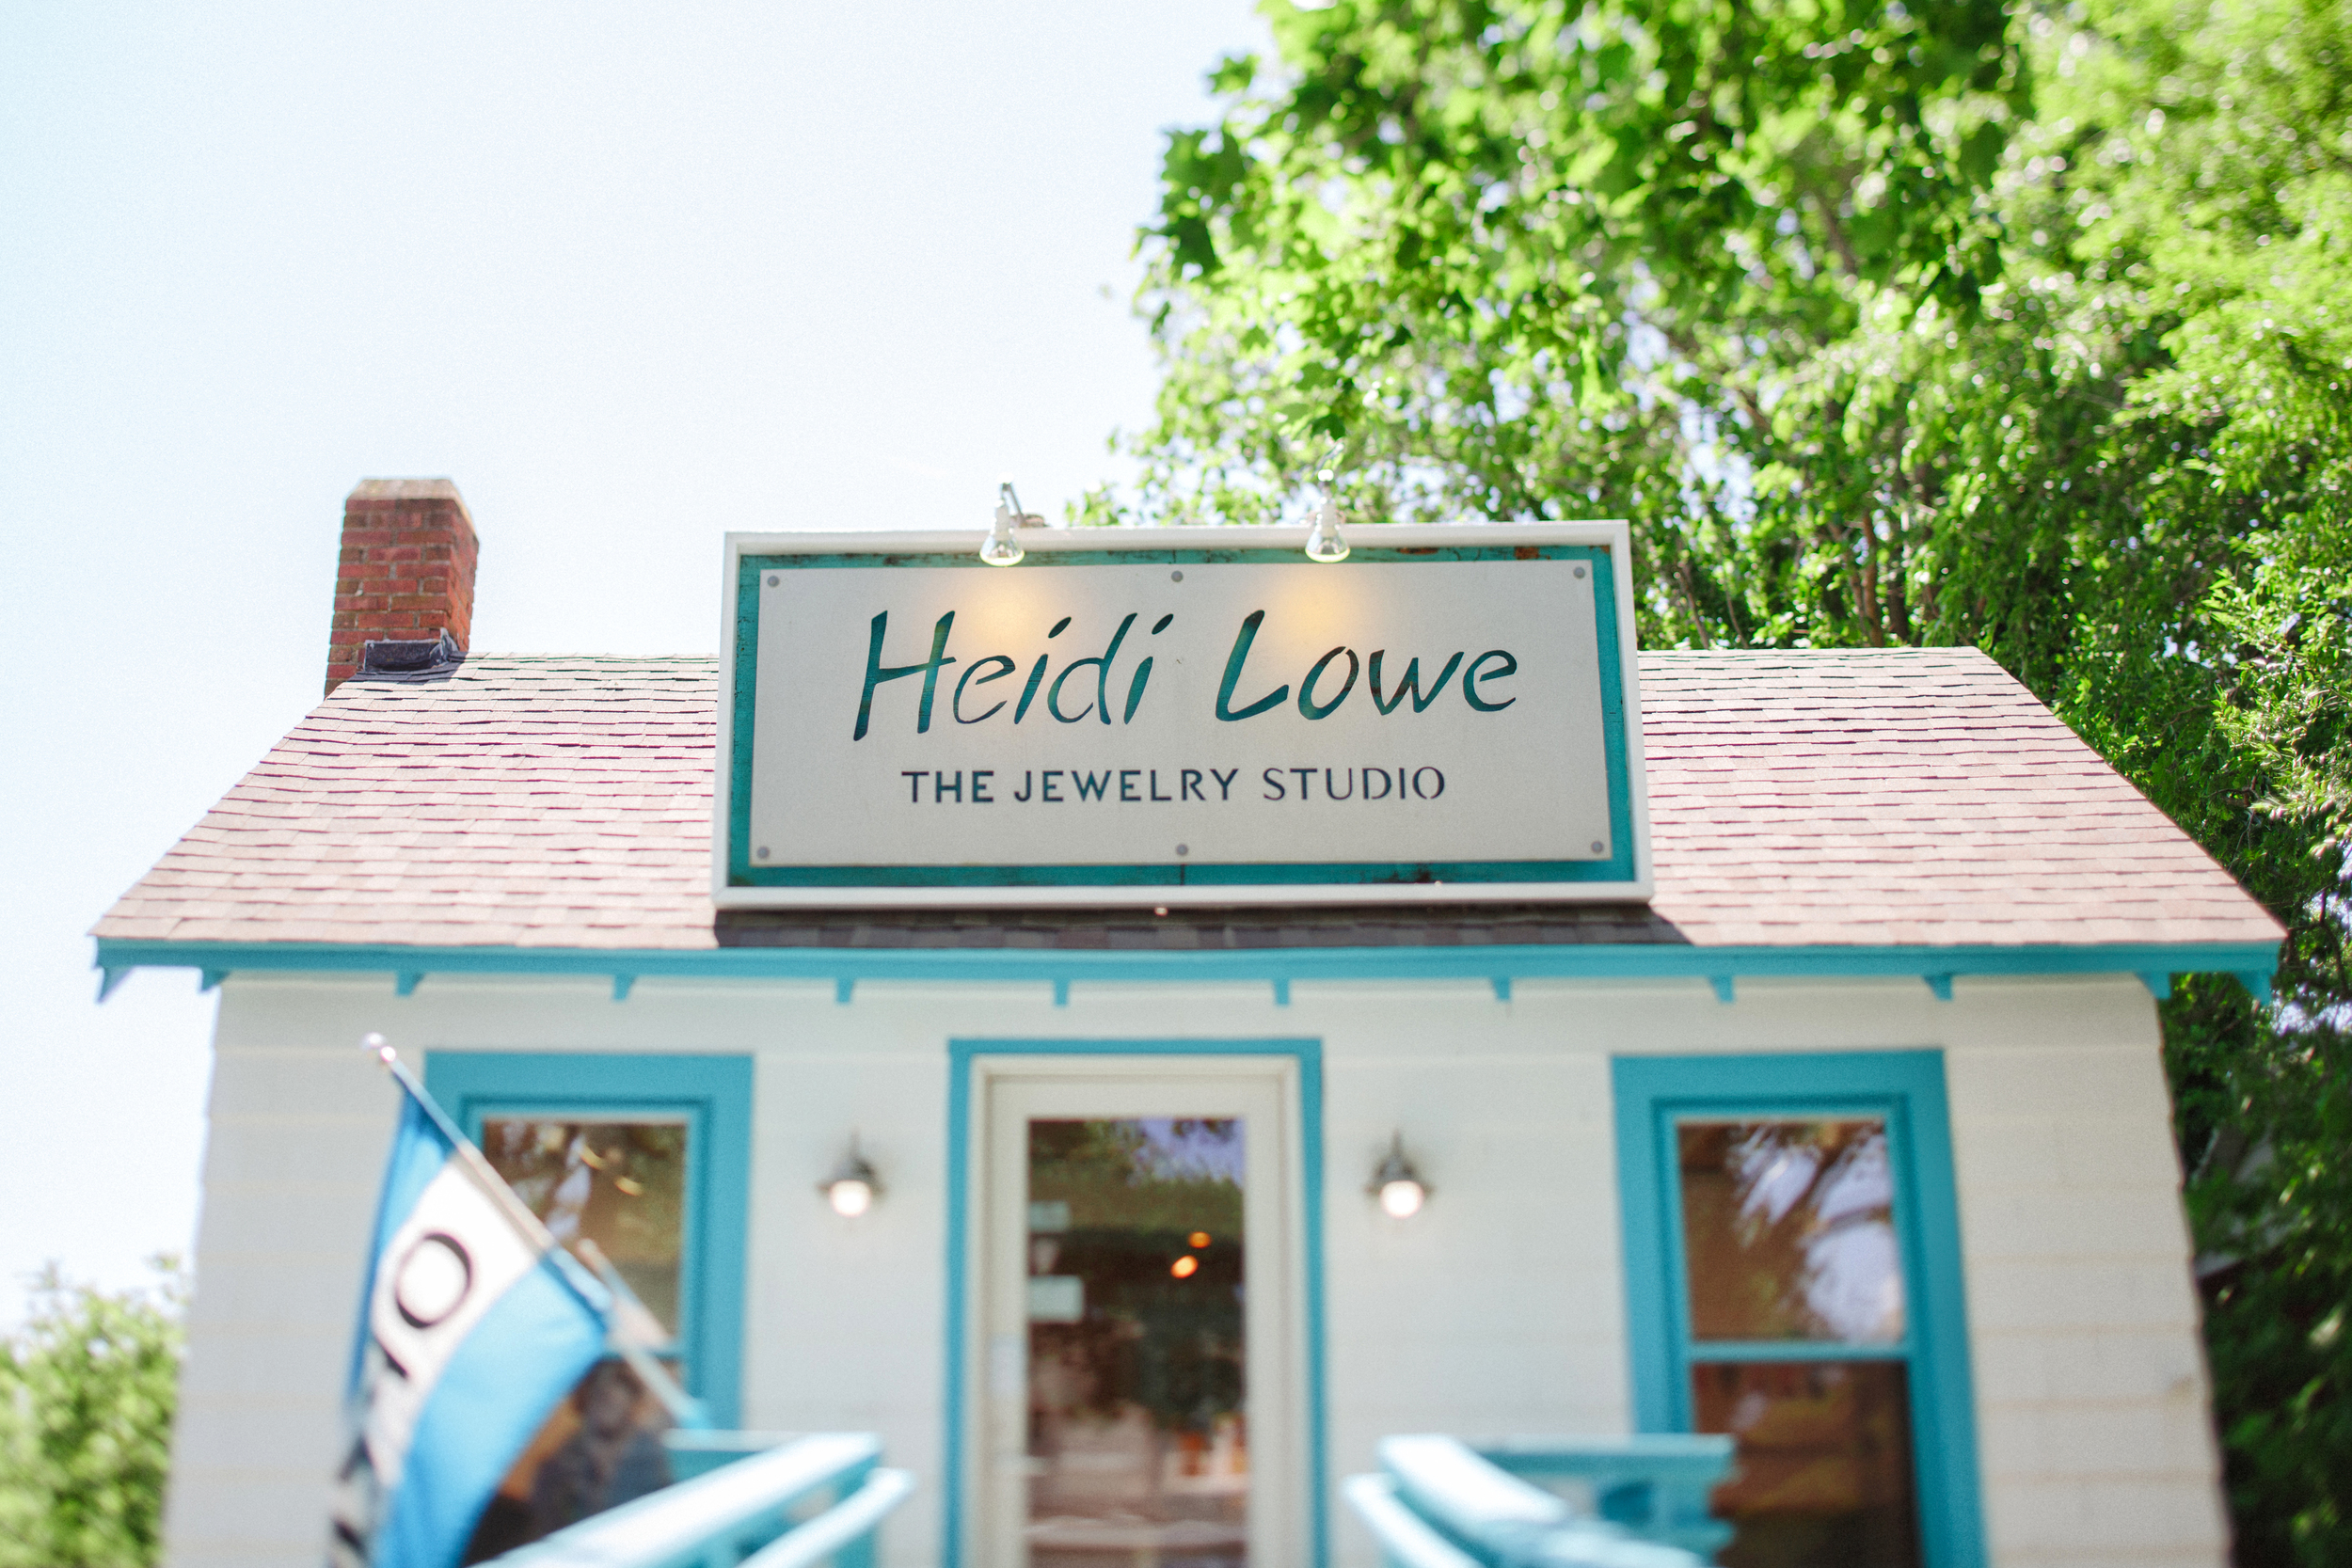 The Heidi Lowe Jewelry Studio in Rehoboth Beach, Delaware. Photos by Maria DeForrest